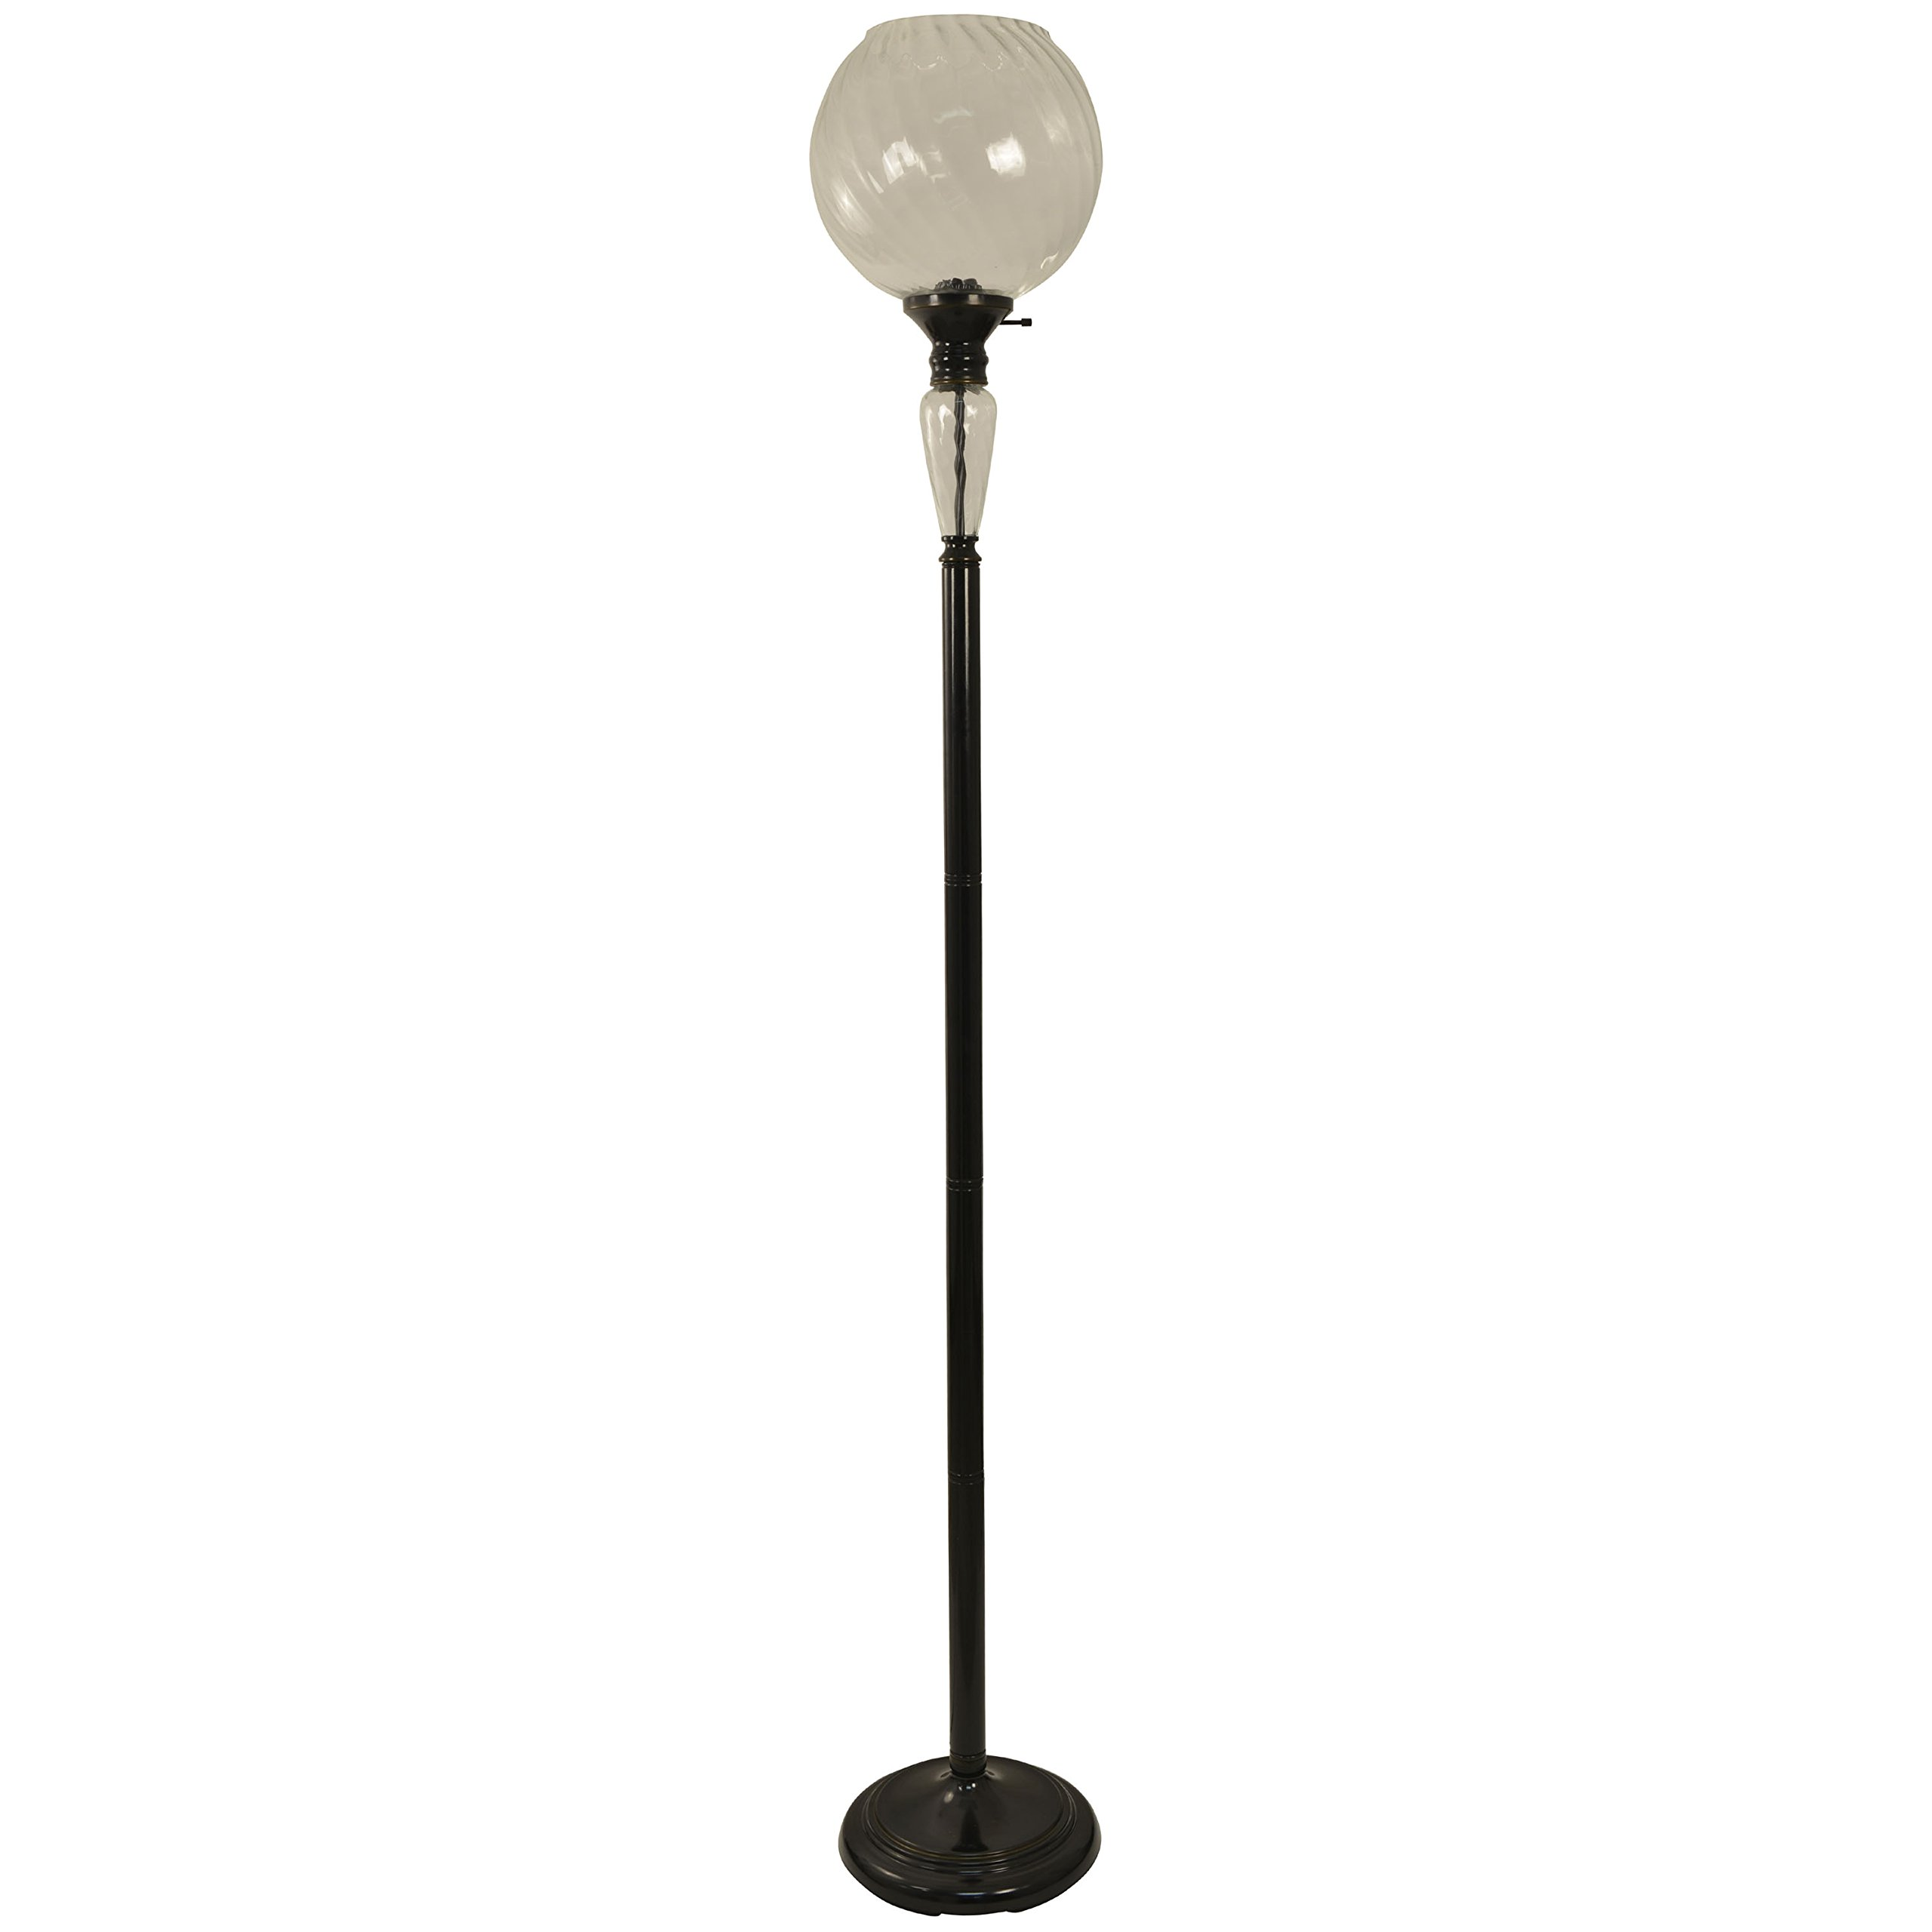 Décor Therapy PL3816 Floor Lamp, Aged Bronze